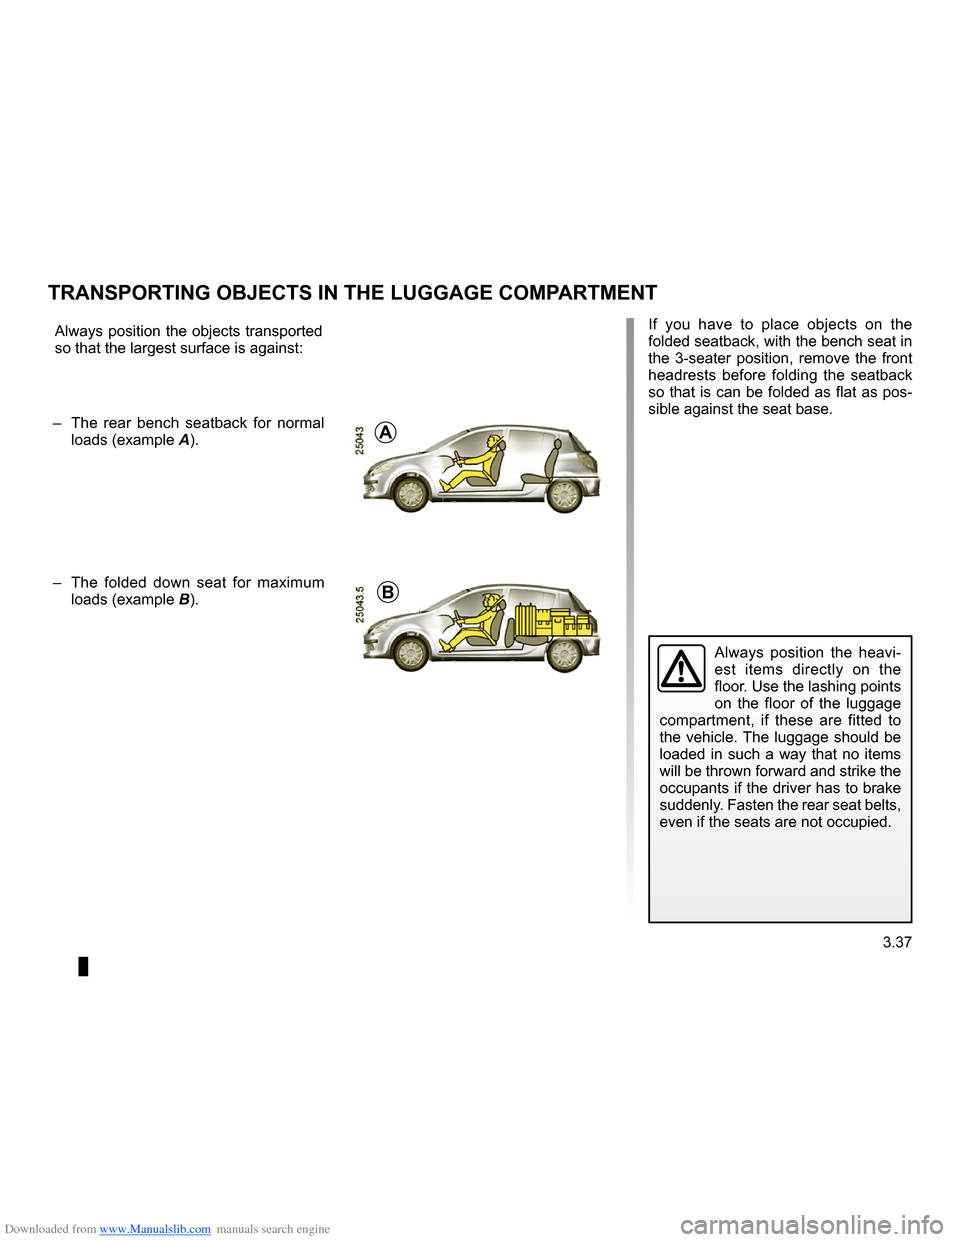 RENAULT CLIO 2009 X85 / 3.G Owners Manual, Page 169